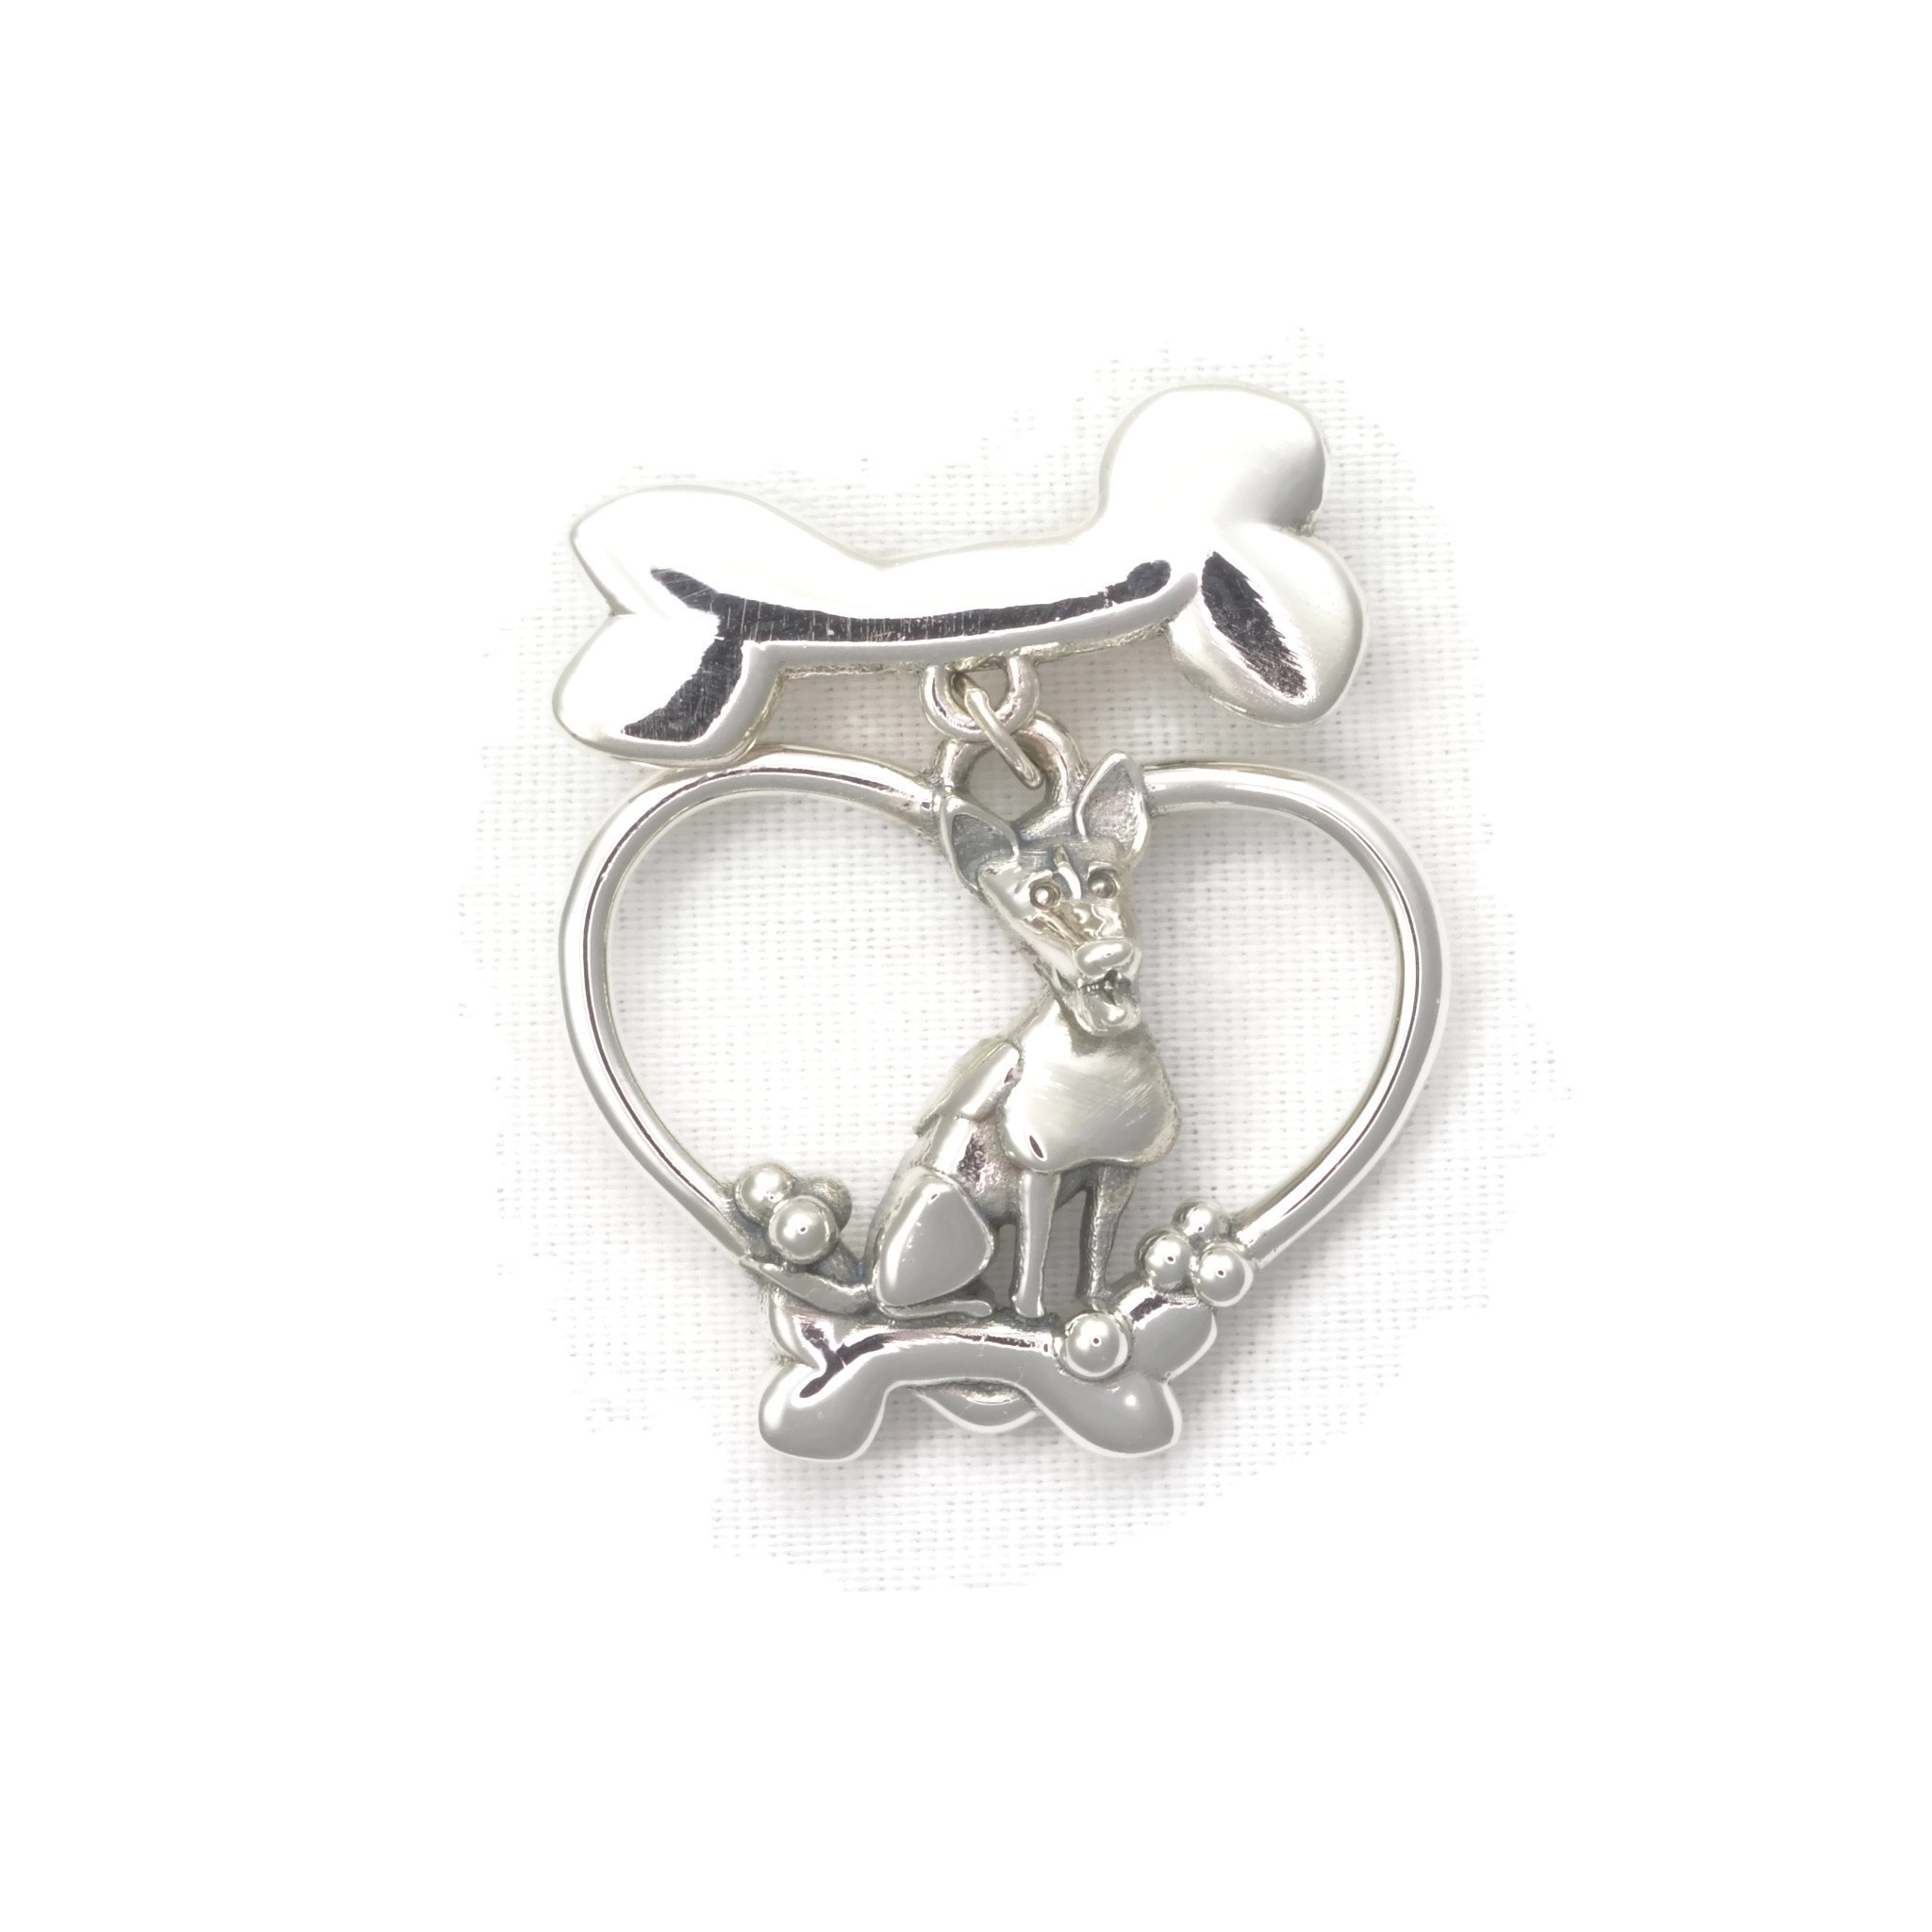 Sterling Silver Jack Russell Terrier Brooch, Jack Russell Pin fr Donna Pizarro's Animal Whimsey Collection of Fine Dog Jewelry